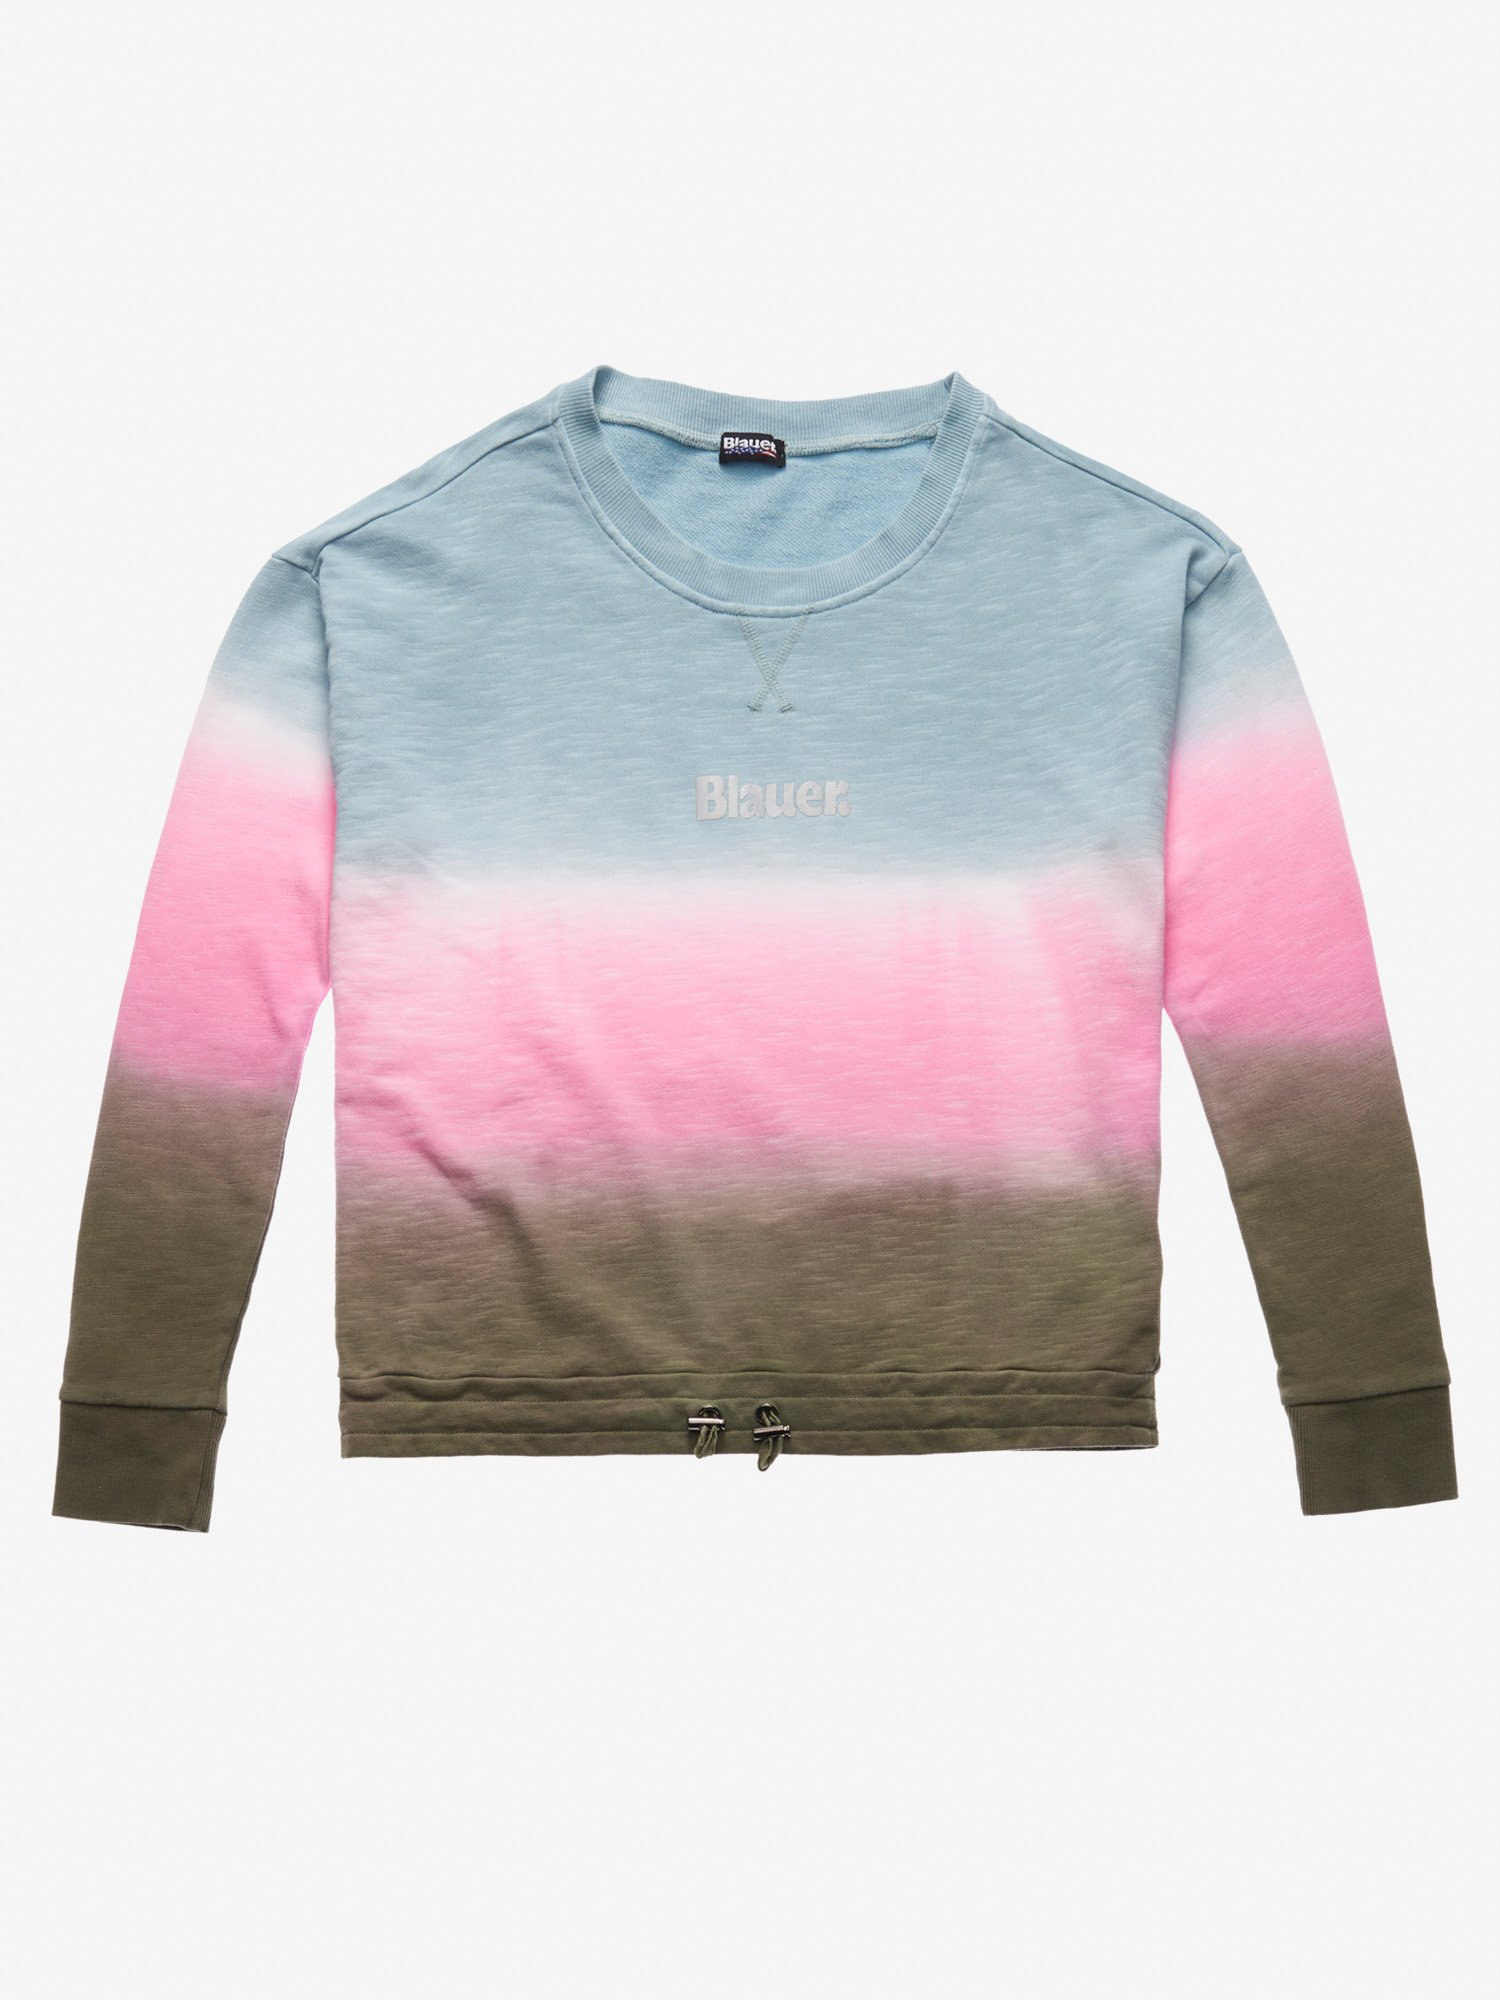 SHADED CREW NECK SWEATSHIRT - Blauer